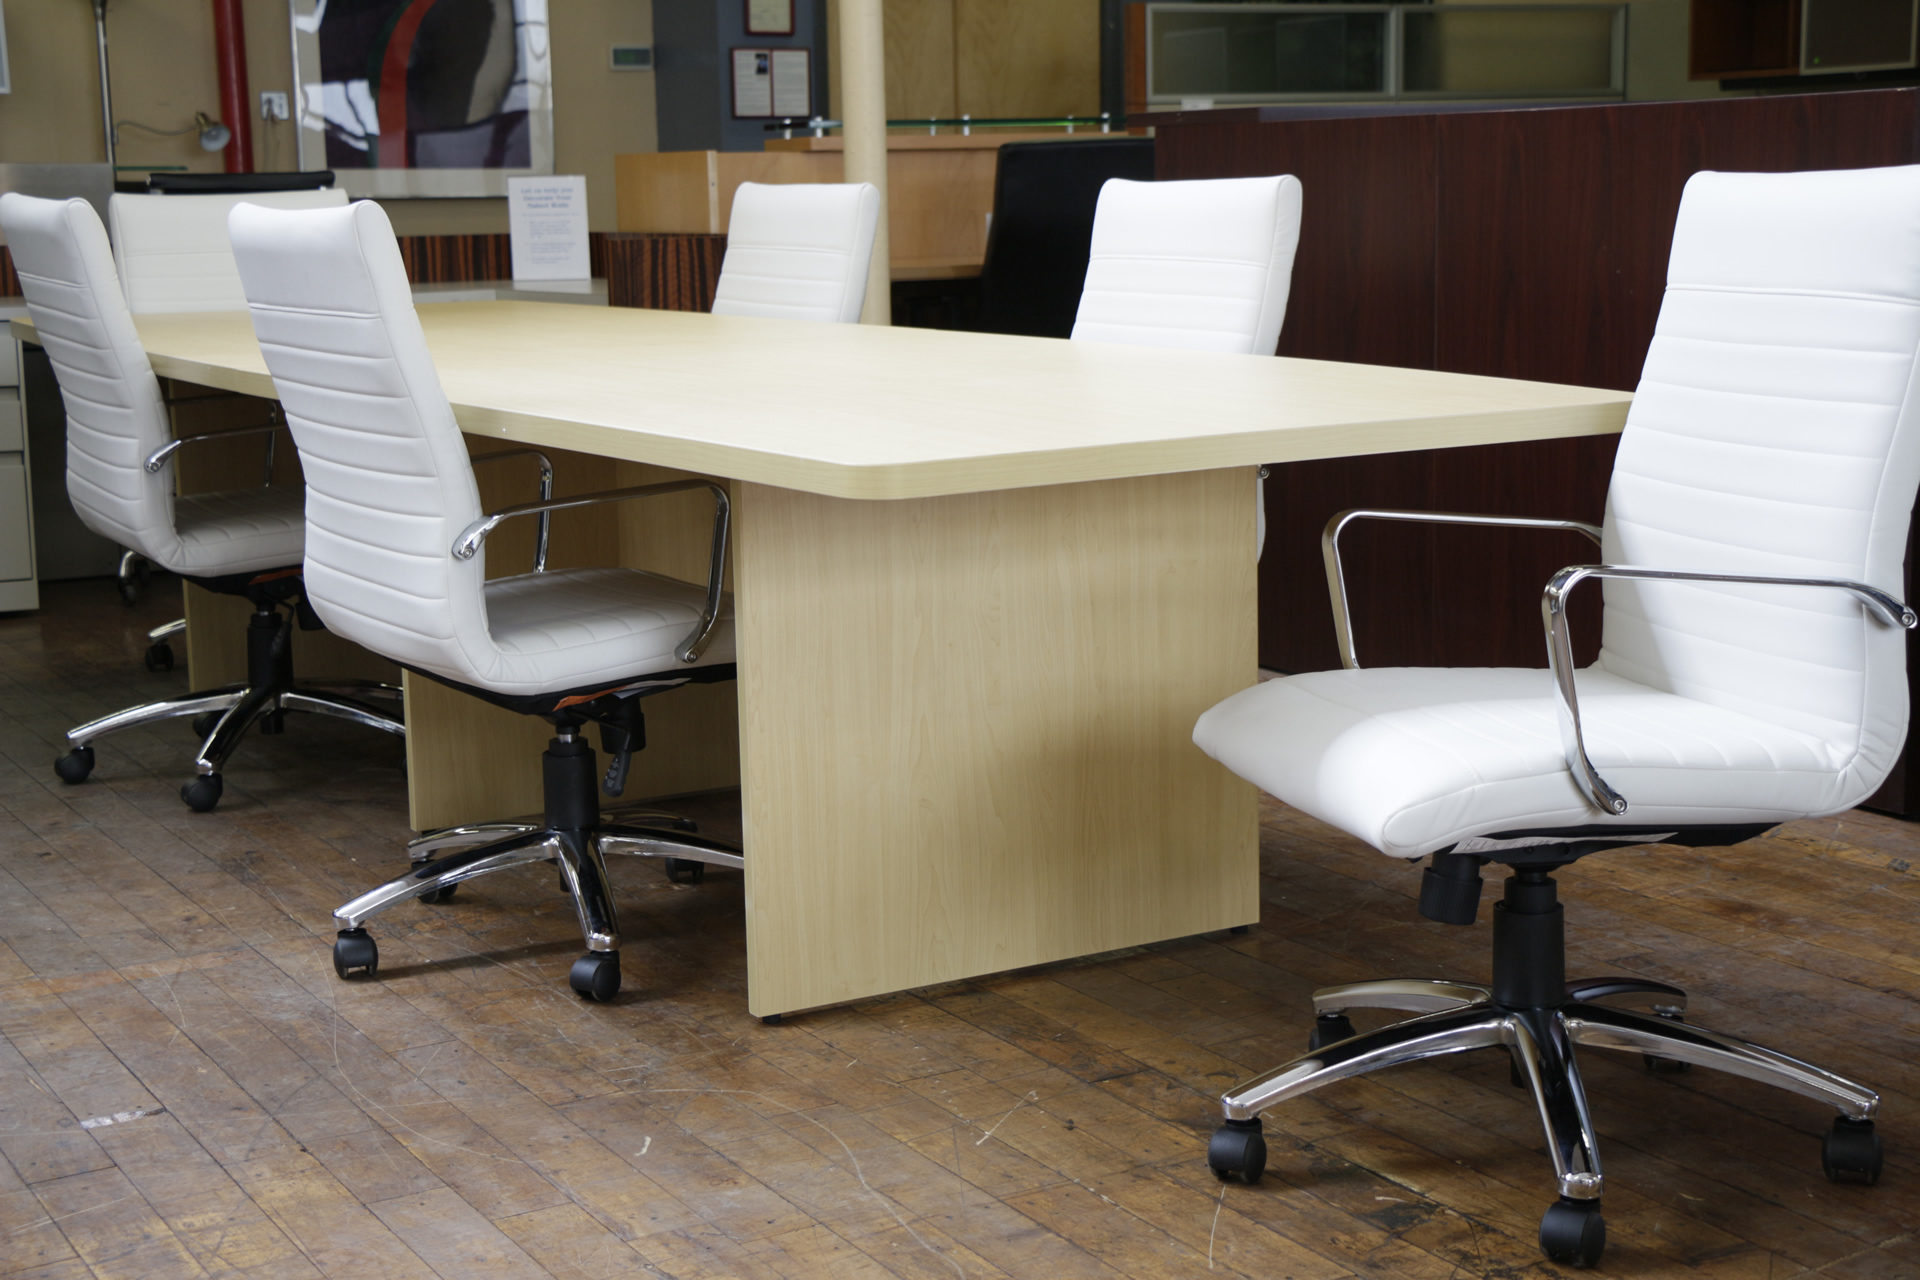 New 12′ Maple Laminate Boat-shaped Conference Table